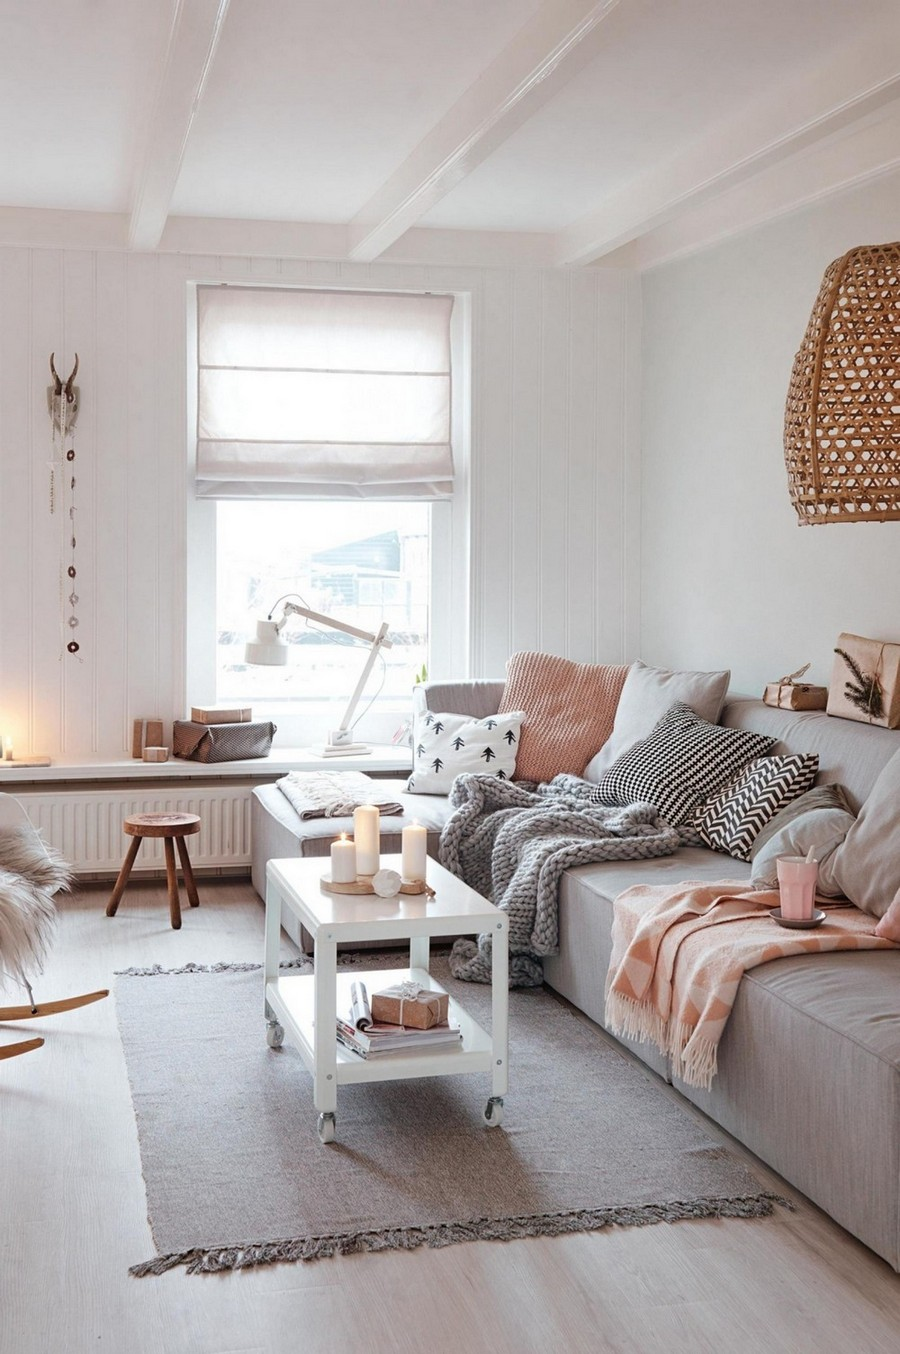 How To Create A Small Living Room Design? Small Living Room Design How To Create A Small Living Room Design? How To Create A Small Living Room Design 6